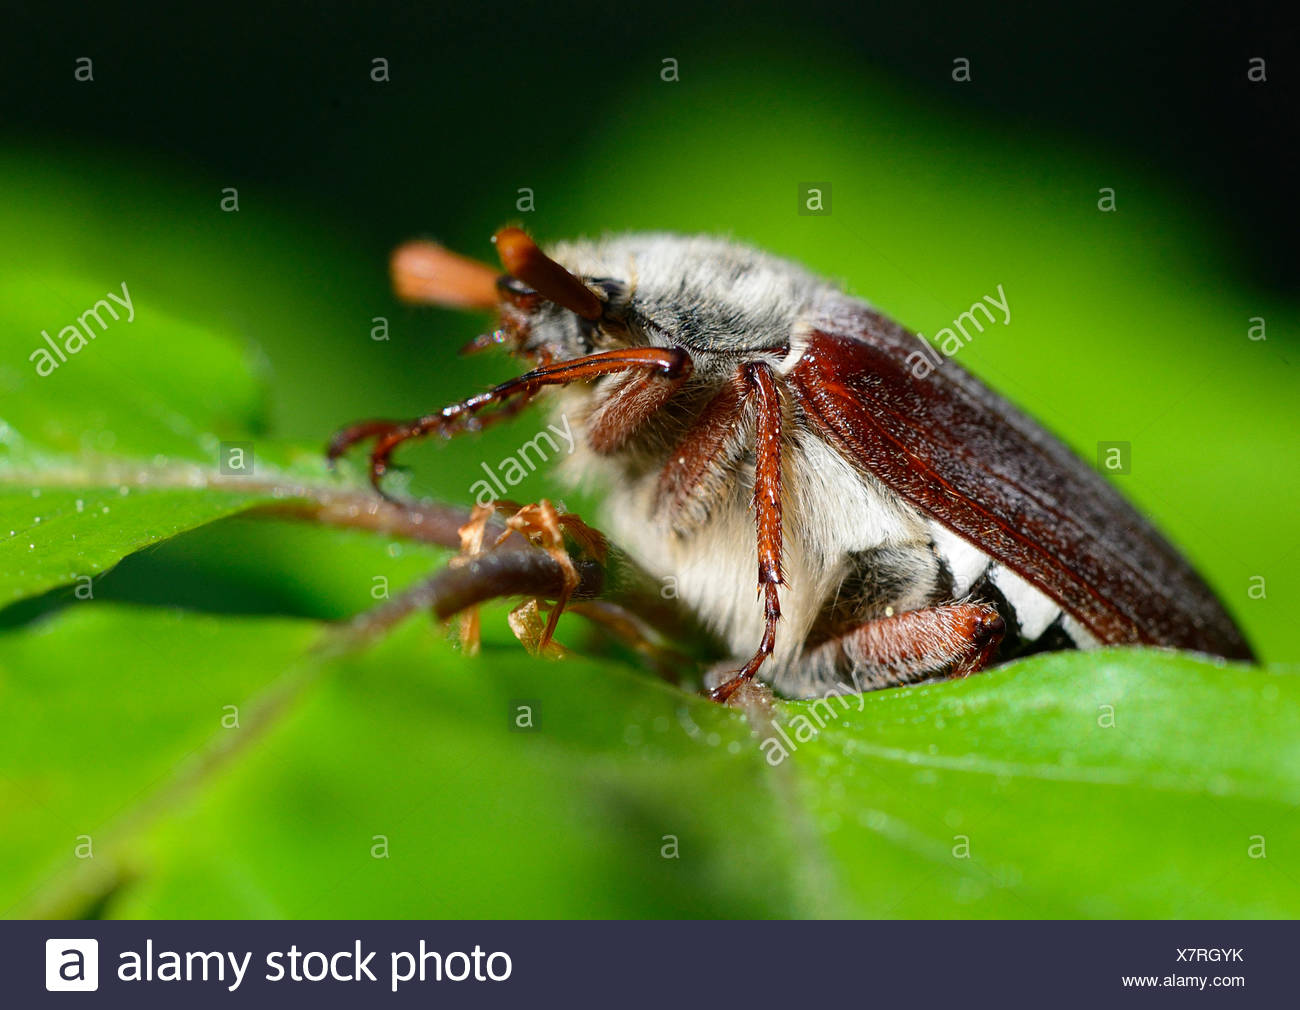 Cockchafer, Melolontha, insects, scarab beetles, Polypagha, beetle, creepy-crawlies, animal, animals, Germany, Europe, - Stock Image